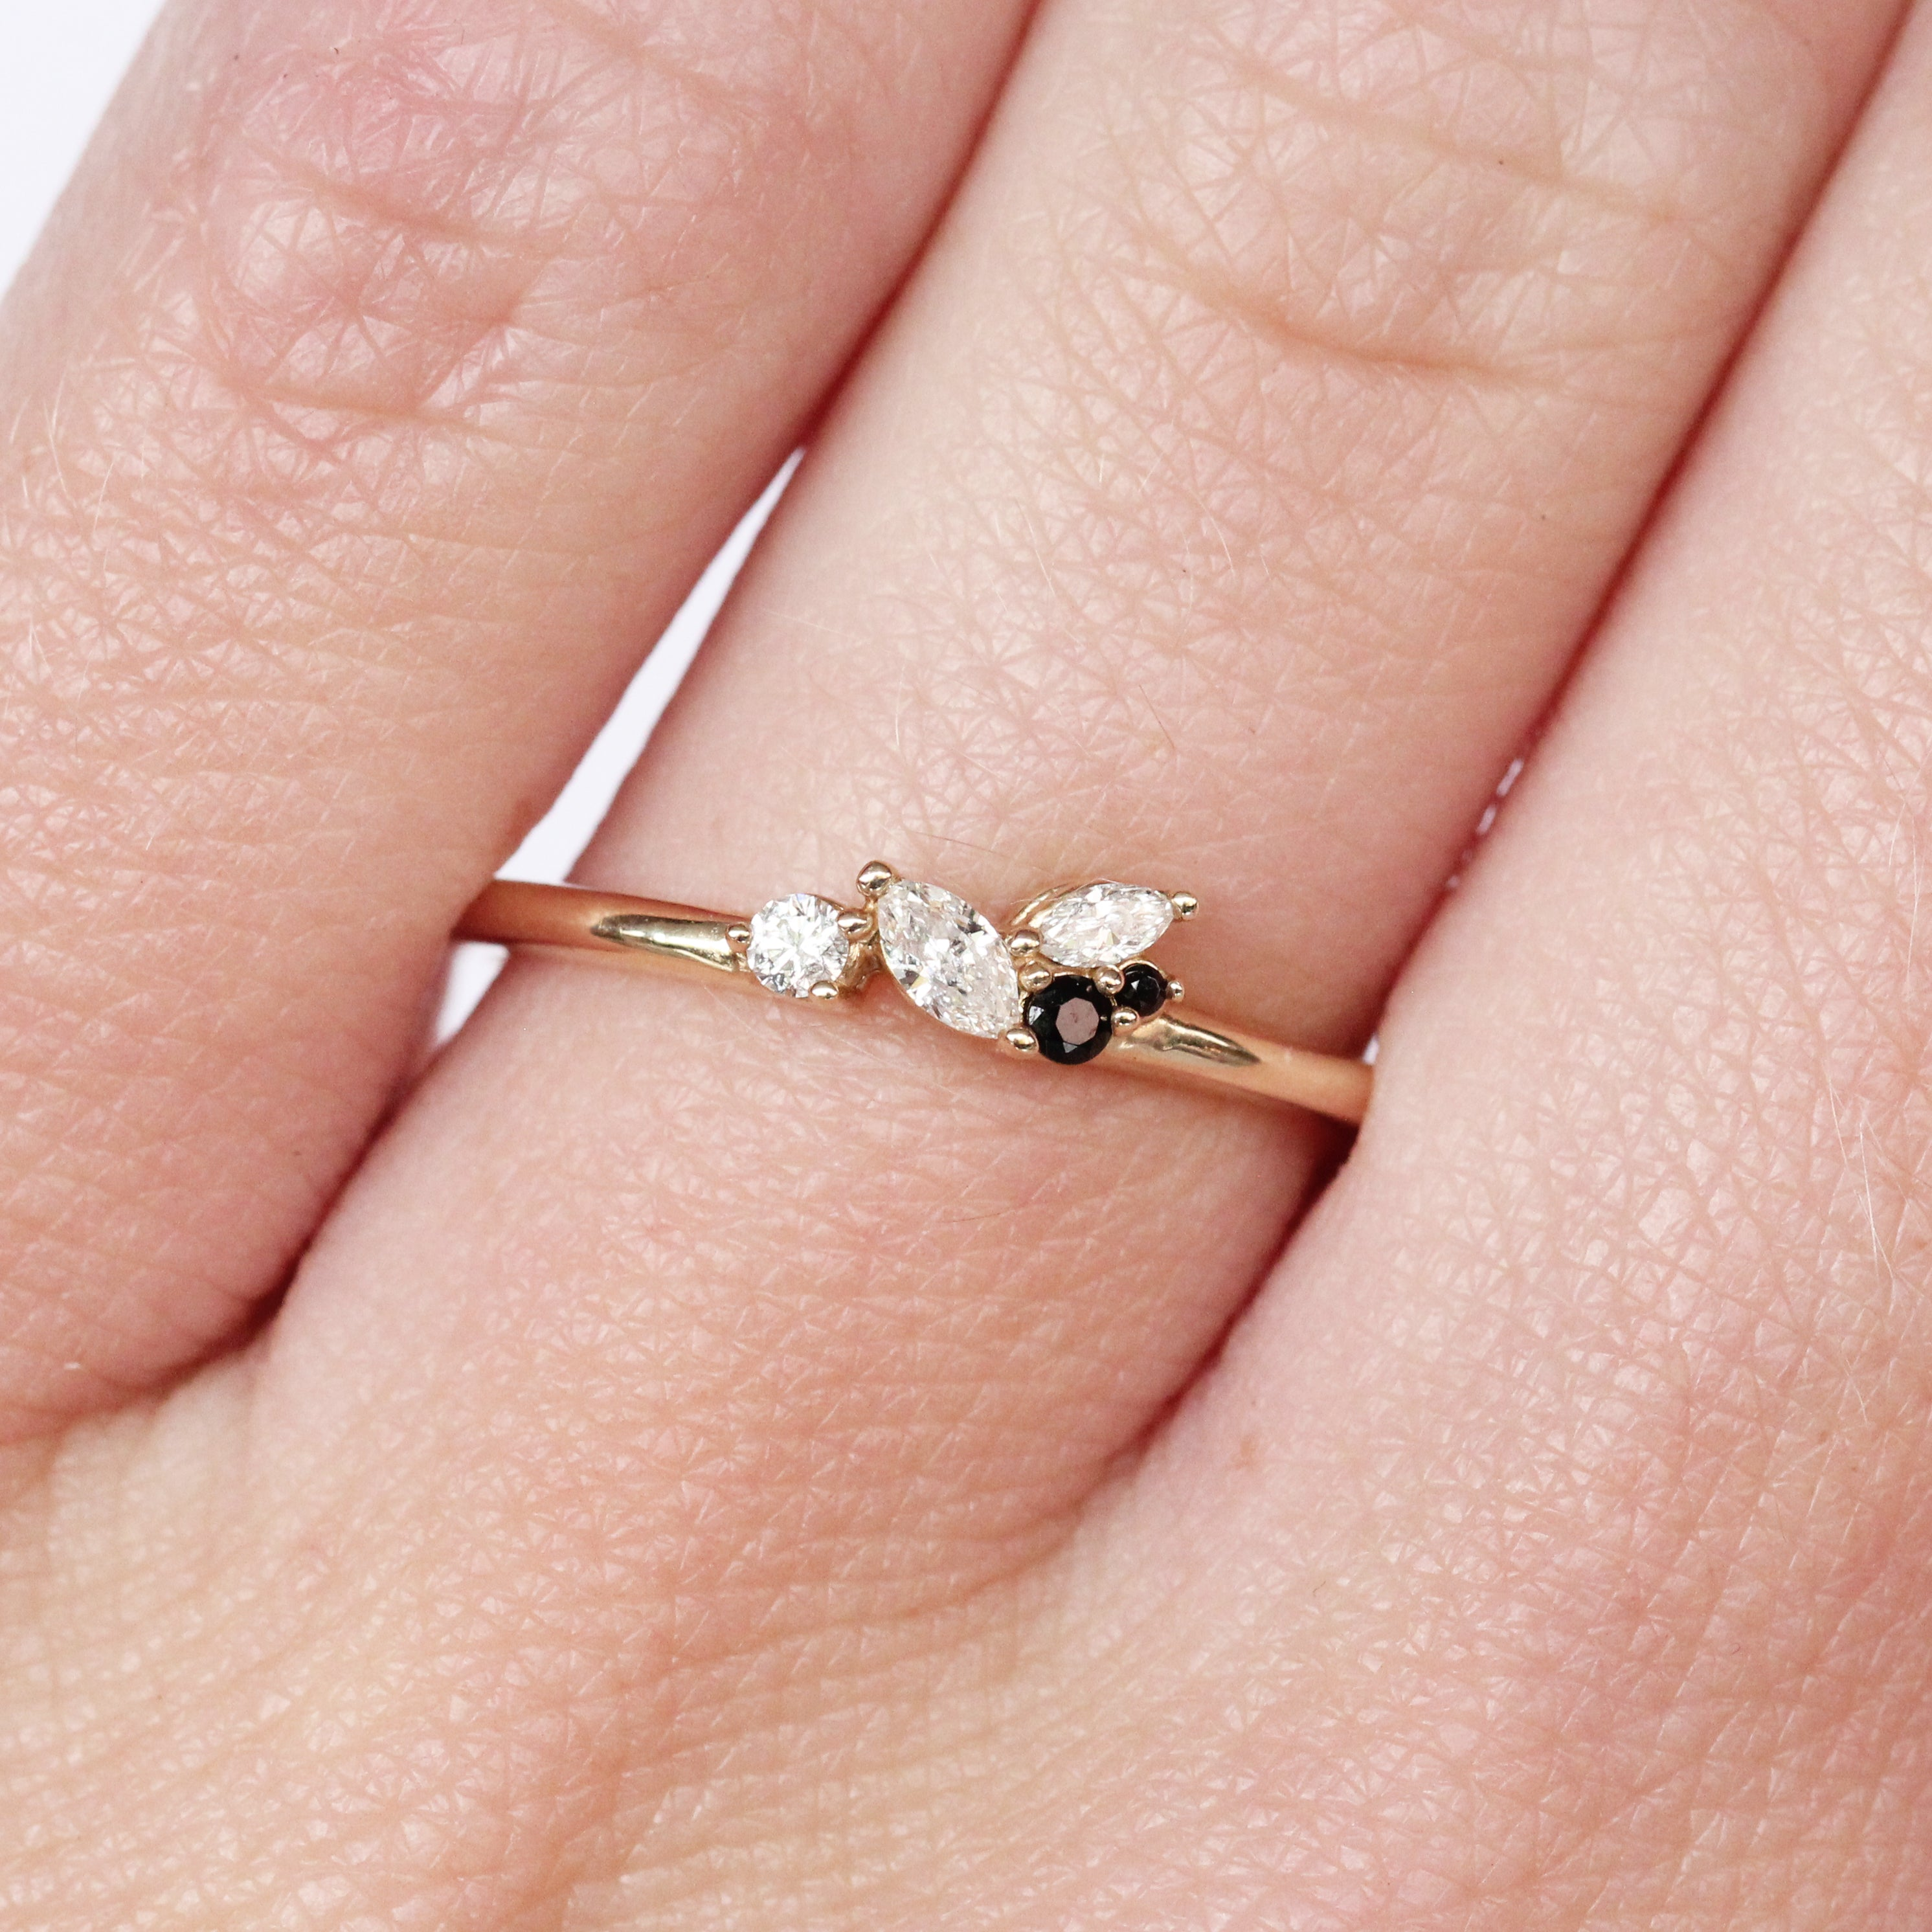 Anna Cluster Stackable or Wedding Ring - Your choice of metal - Custom - Salt & Pepper Celestial Diamond Engagement Rings and Wedding Bands  by Midwinter Co.